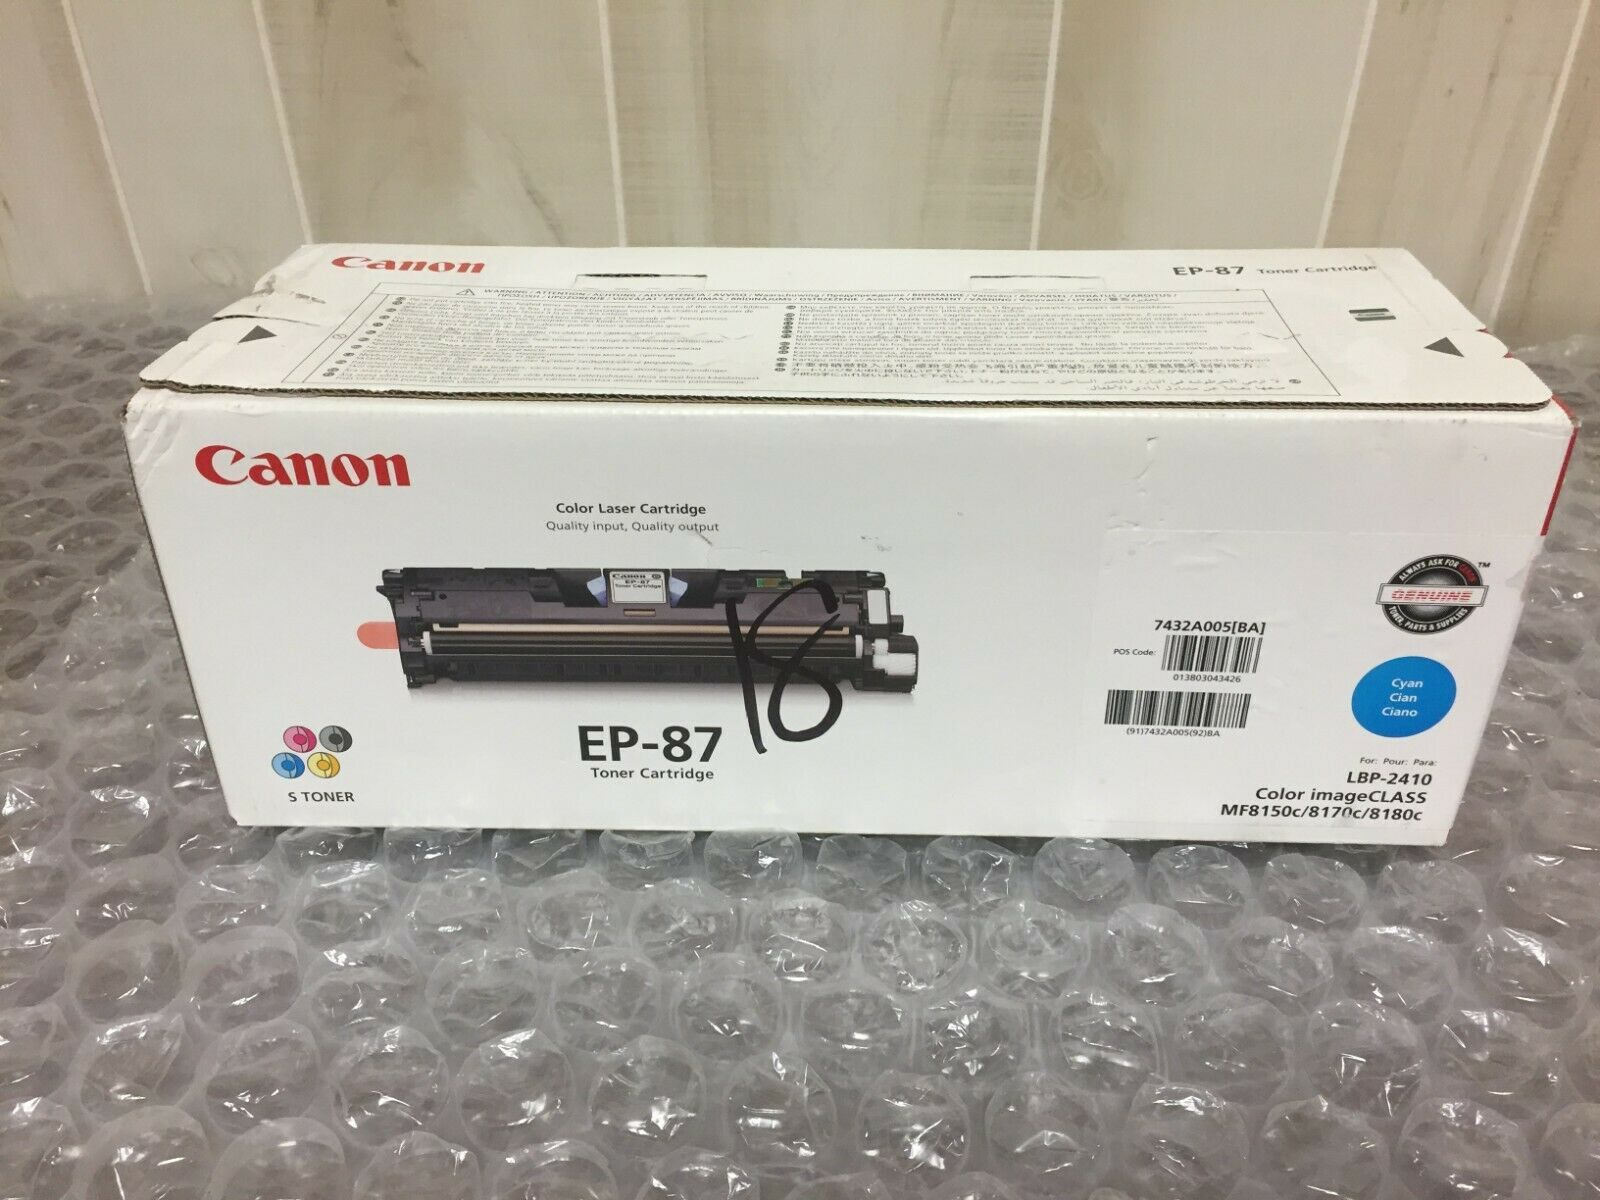 Primary image for Canon EP-87 Toner Cartridge Cyan LBP-2410 Color imageCLASS MF8150c/8170c/8180c